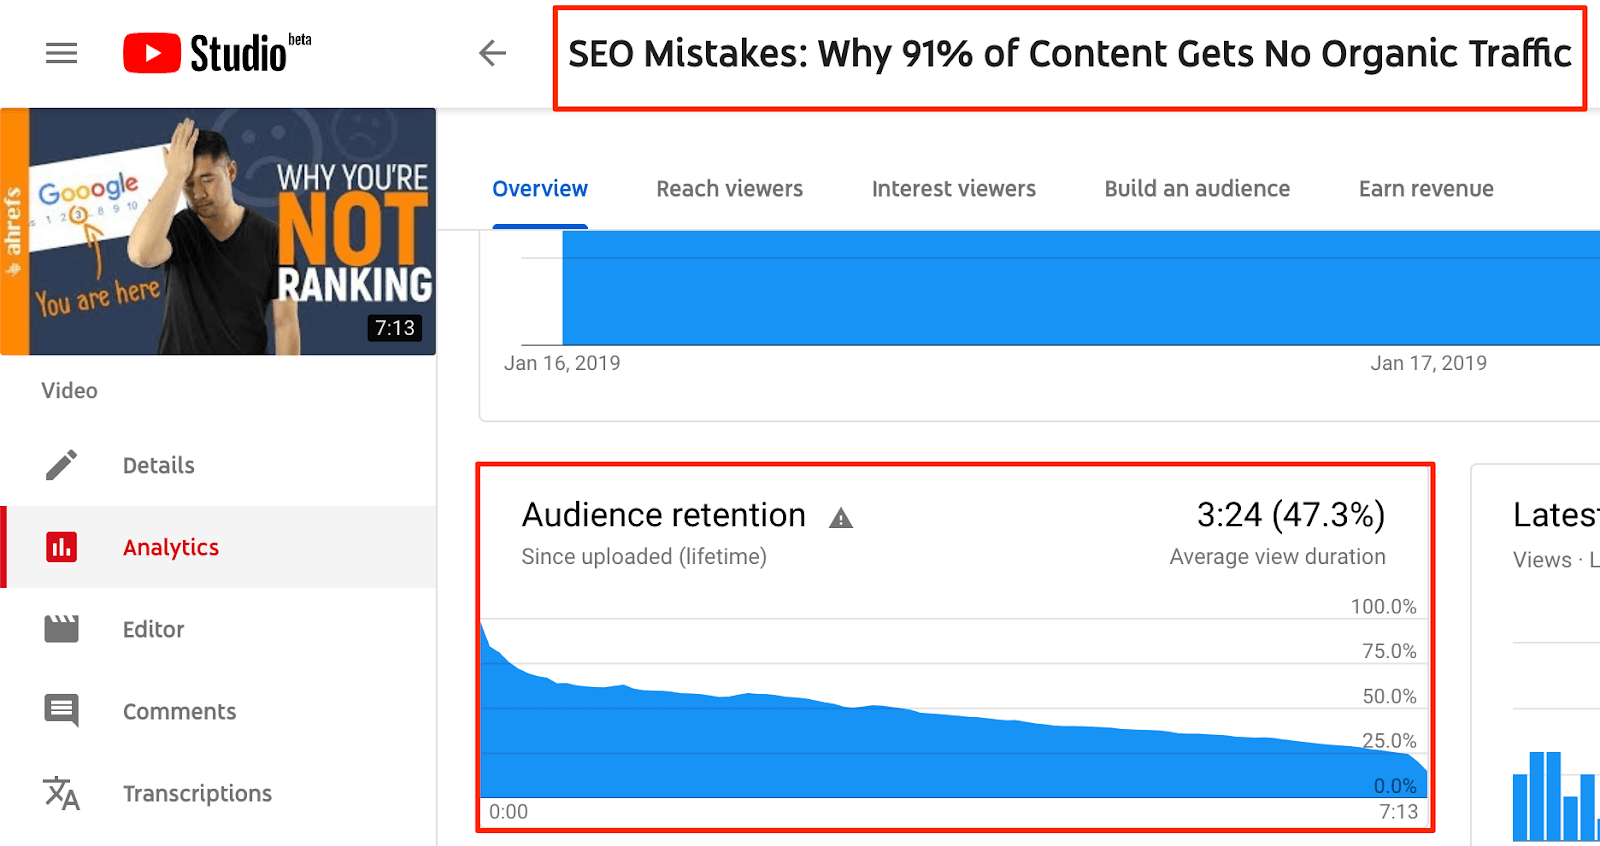 "youtube studio audience retention"" srcset=""https://i2.wp.com/ahrefs.com/blog/wp-content/uploads/2019/03/youtube-studio-audience-retention.png?ssl=1 1600w, https://ahrefs.com/blog/wp-content/uploads/2019/03/youtube-studio-audience-retention-768x406.png 768w, https://ahrefs.com/blog/wp-content/uploads/2019/03/youtube-studio-audience-retention-680x360.png 680w"" sizes=""(max-width: 1600px) 100vw, 1600px"